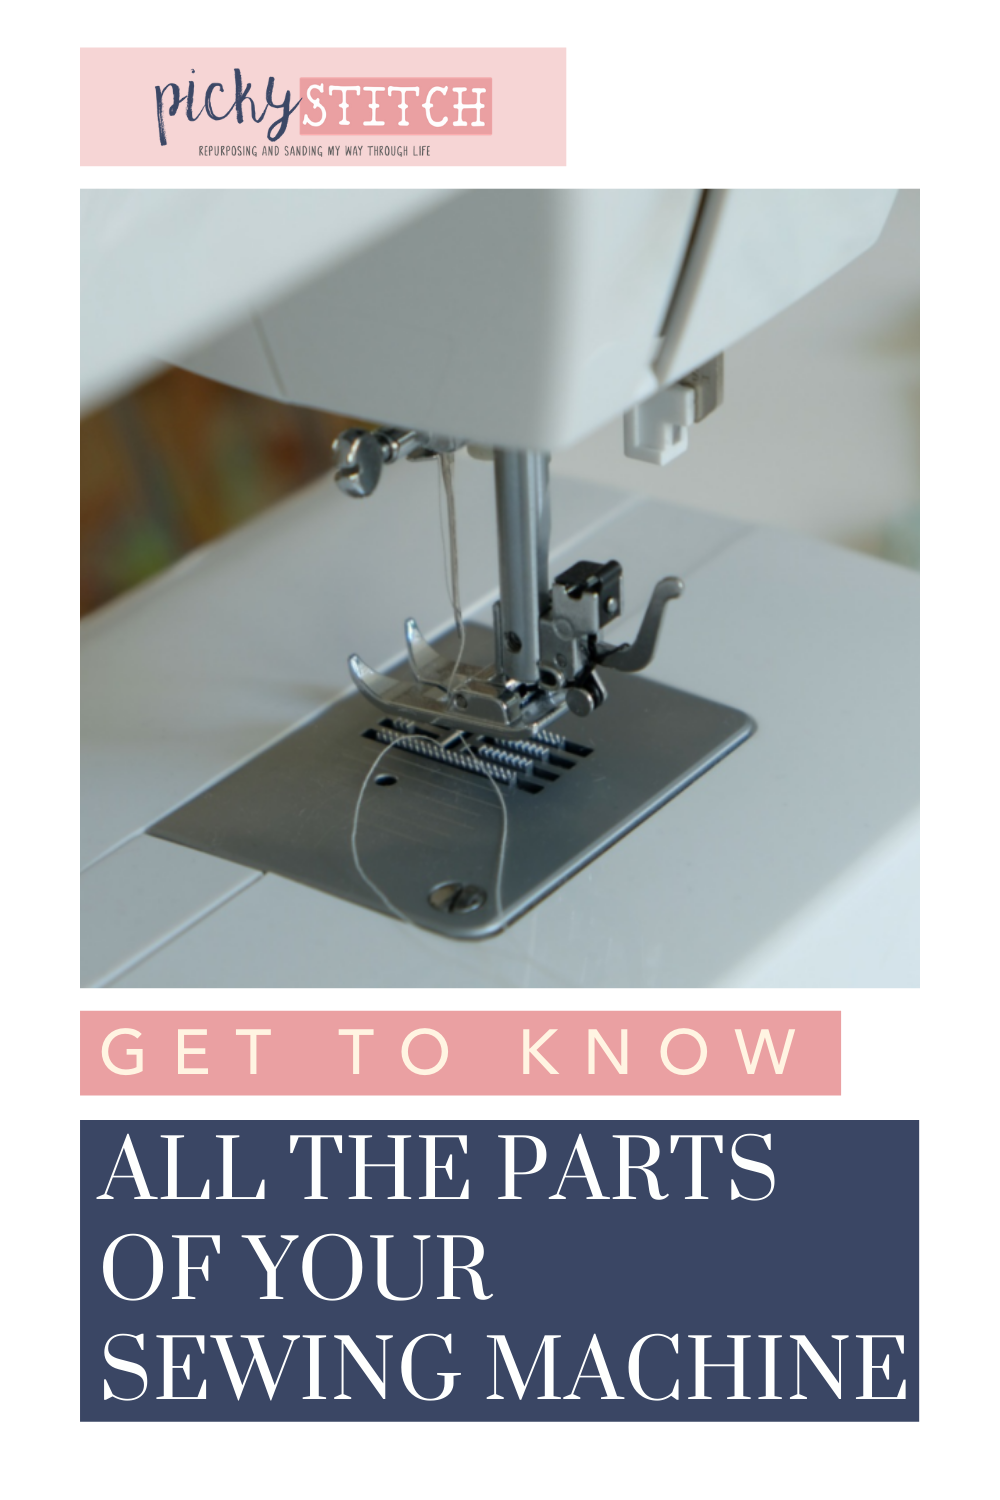 Pickystitch.com has all the best ideas to put the fun into craft projects! If you have a sewing machine, you might be overwhelmed by all of its functions. Check out this simple guide to learn the parts of your sewing machine now!